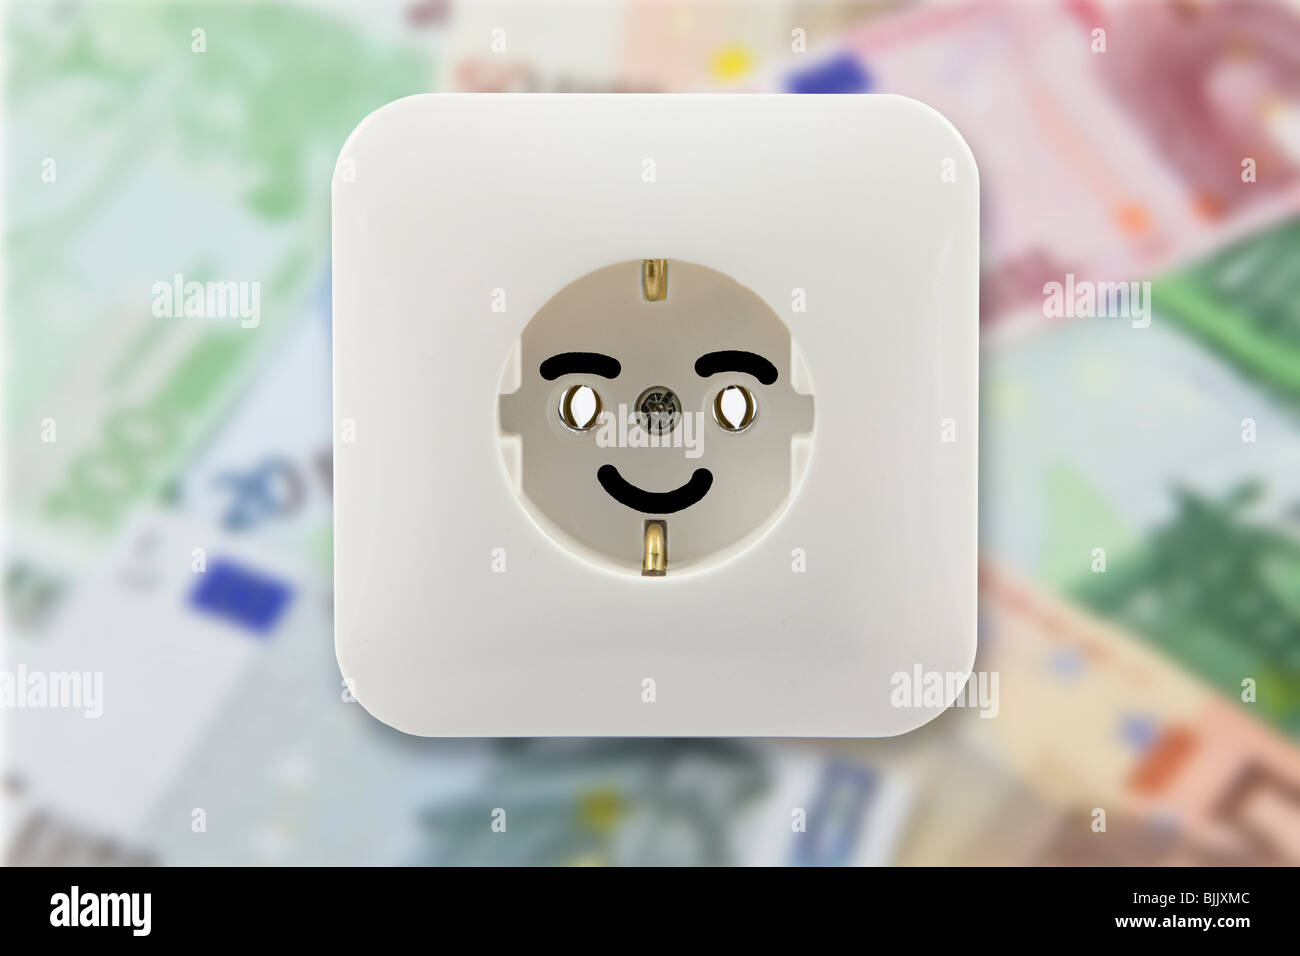 Symbolic image for cheap electricity, happy about a low electricity bill - Stock Image